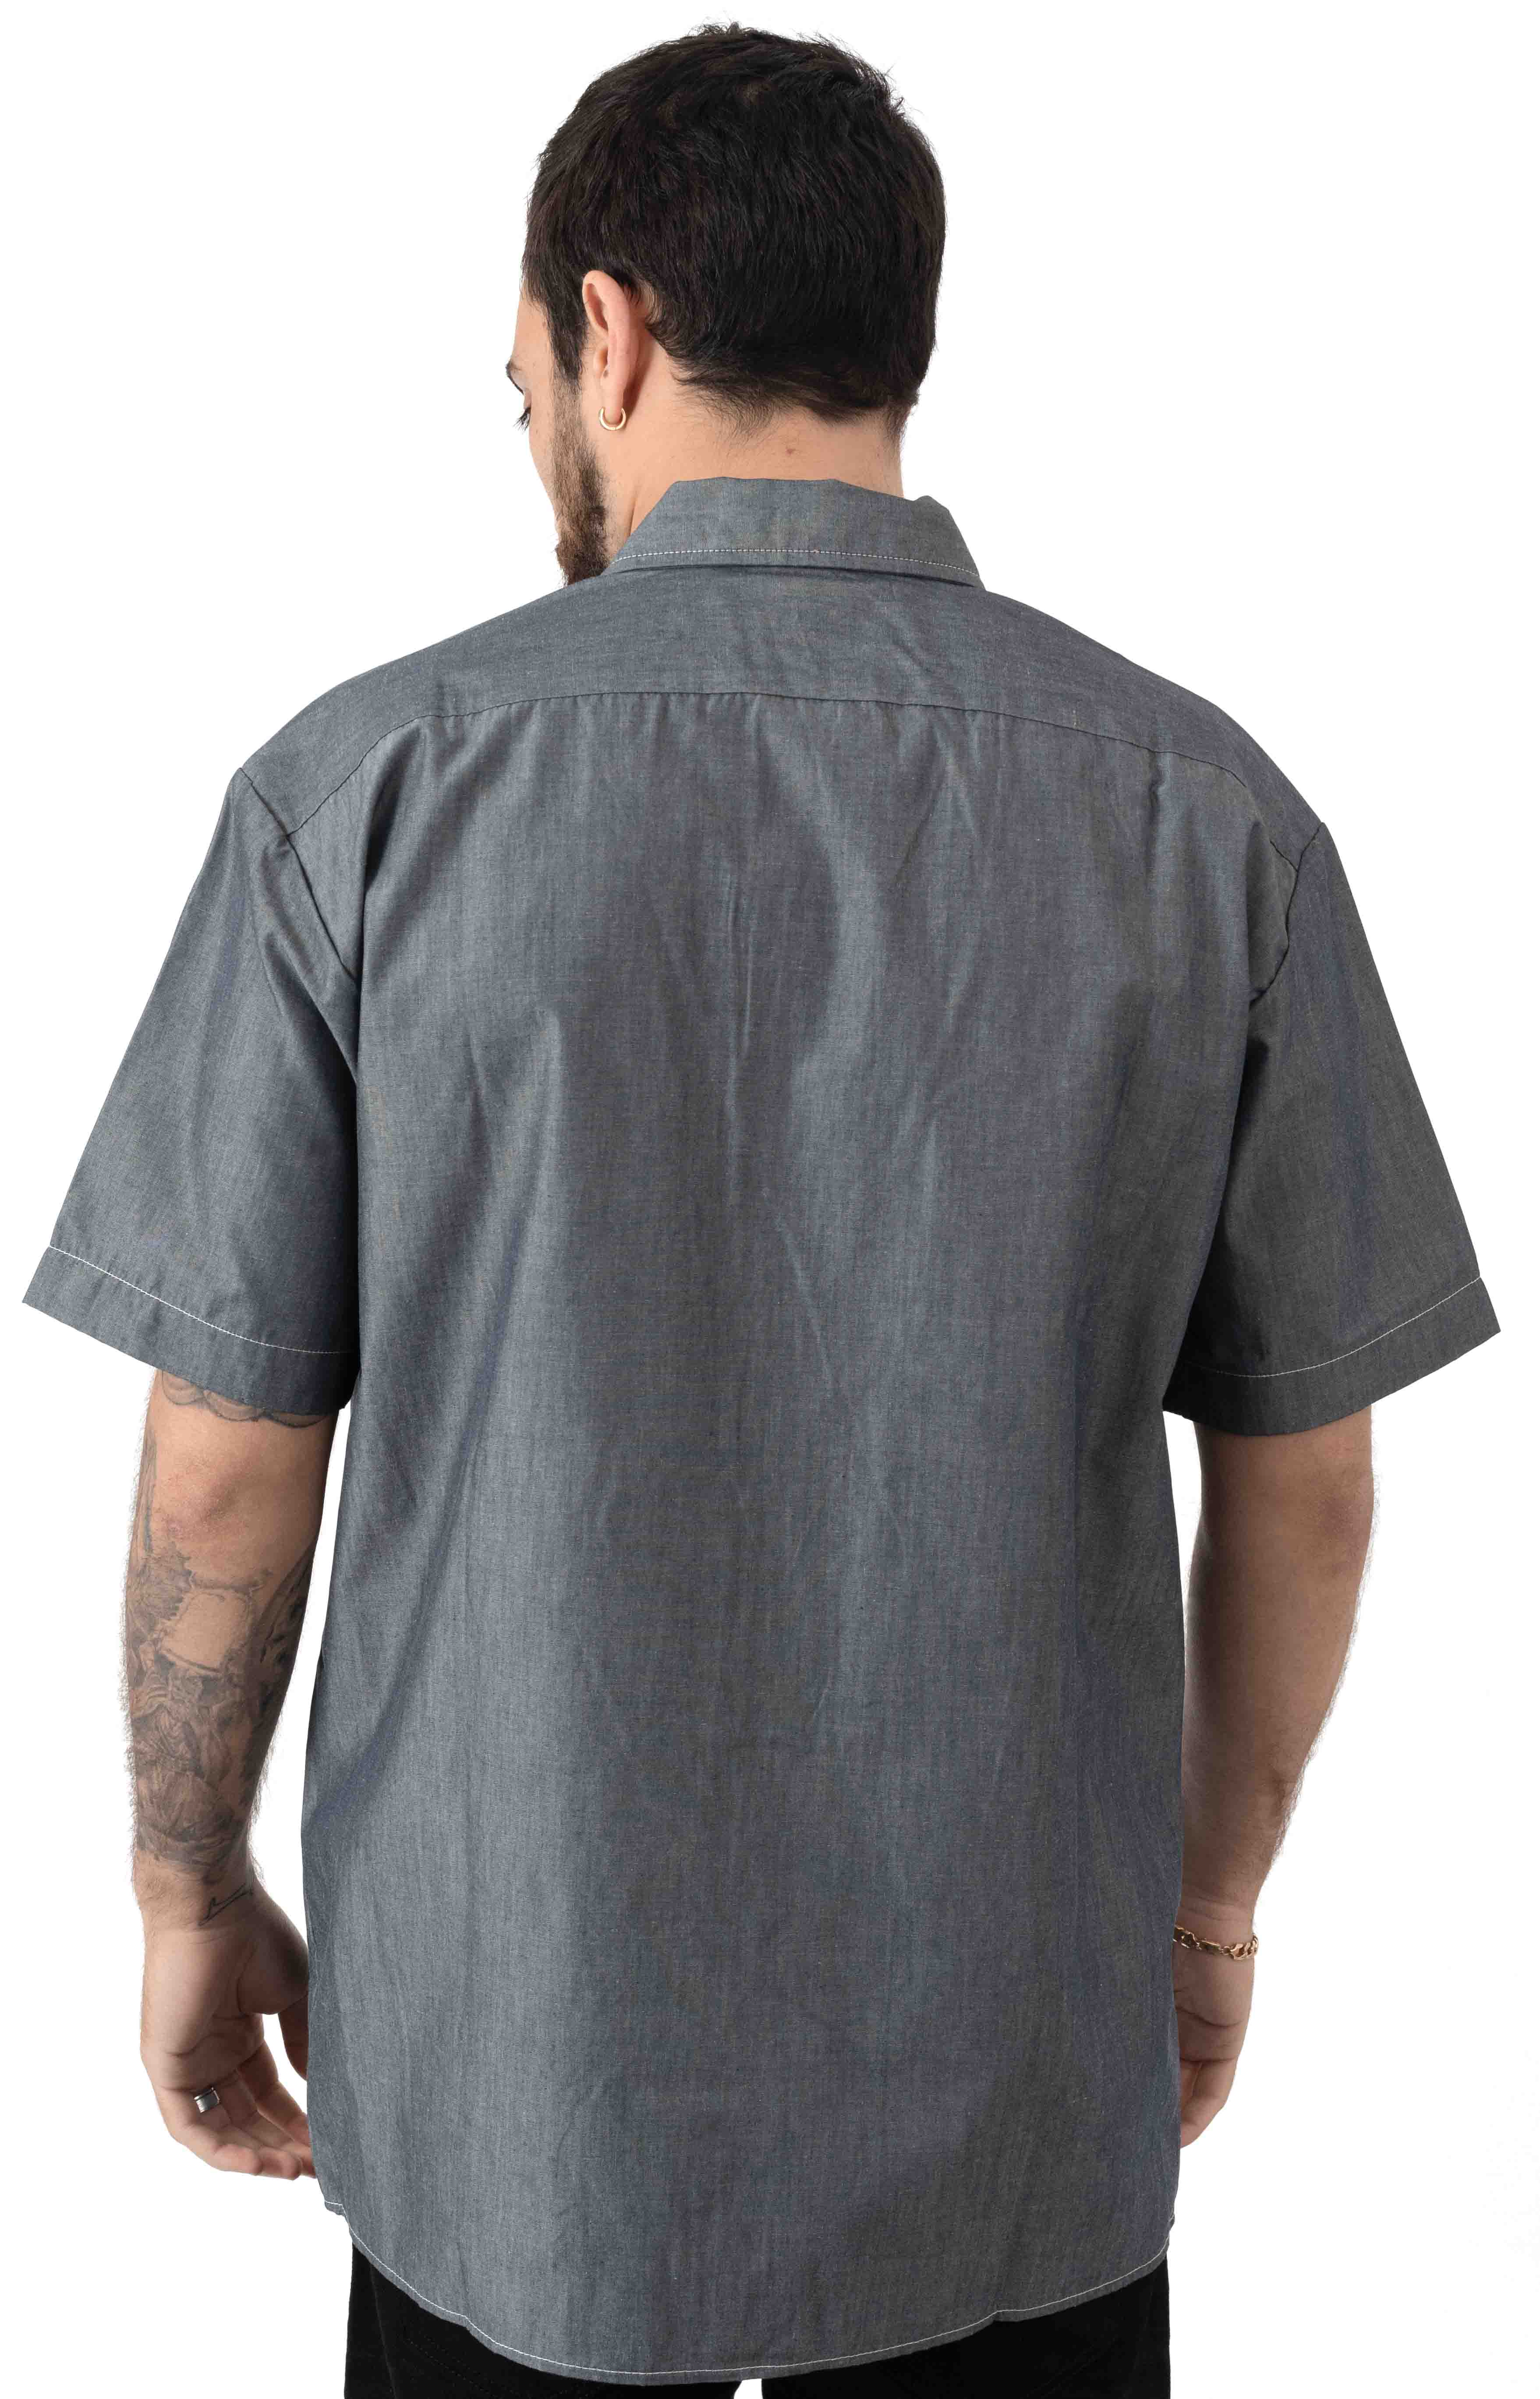 (WS509NVC) Relaxed Fit Short Sleeve Chambray Shirt - Navy Chambray 3